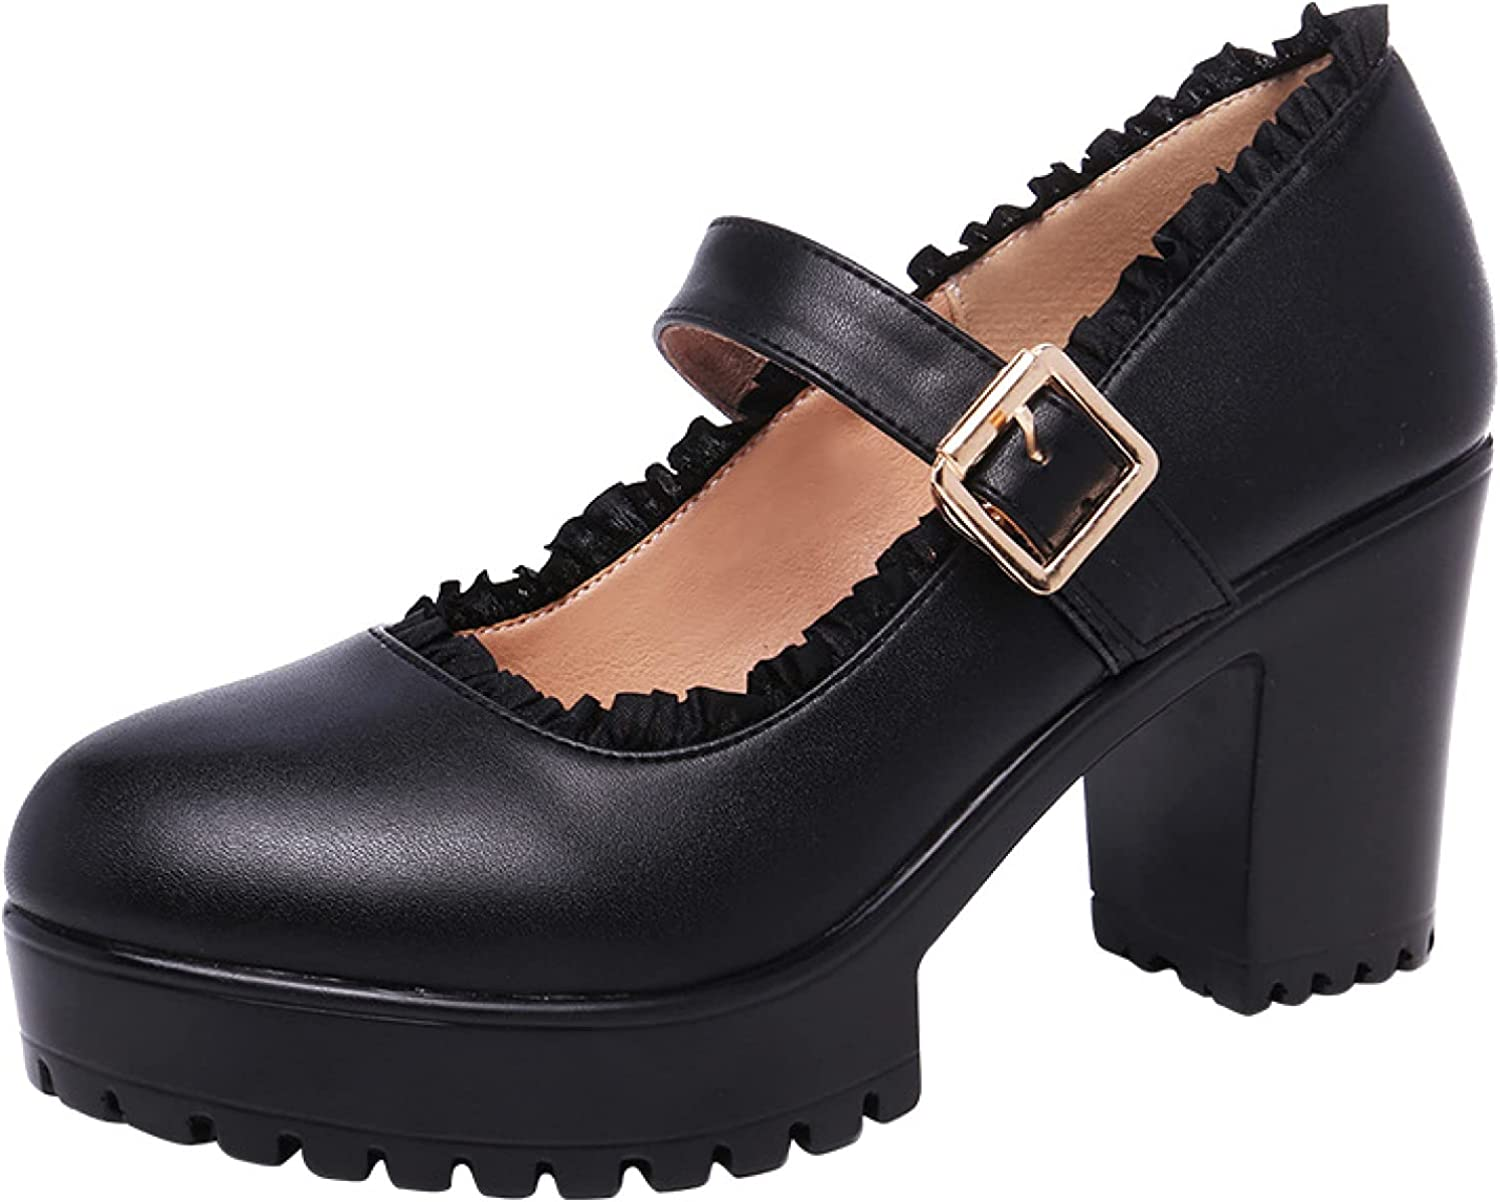 Women's Stylish Ankle Rapid rise Strap Mary Jane Block H High Financial sales sale Shoes Elegant